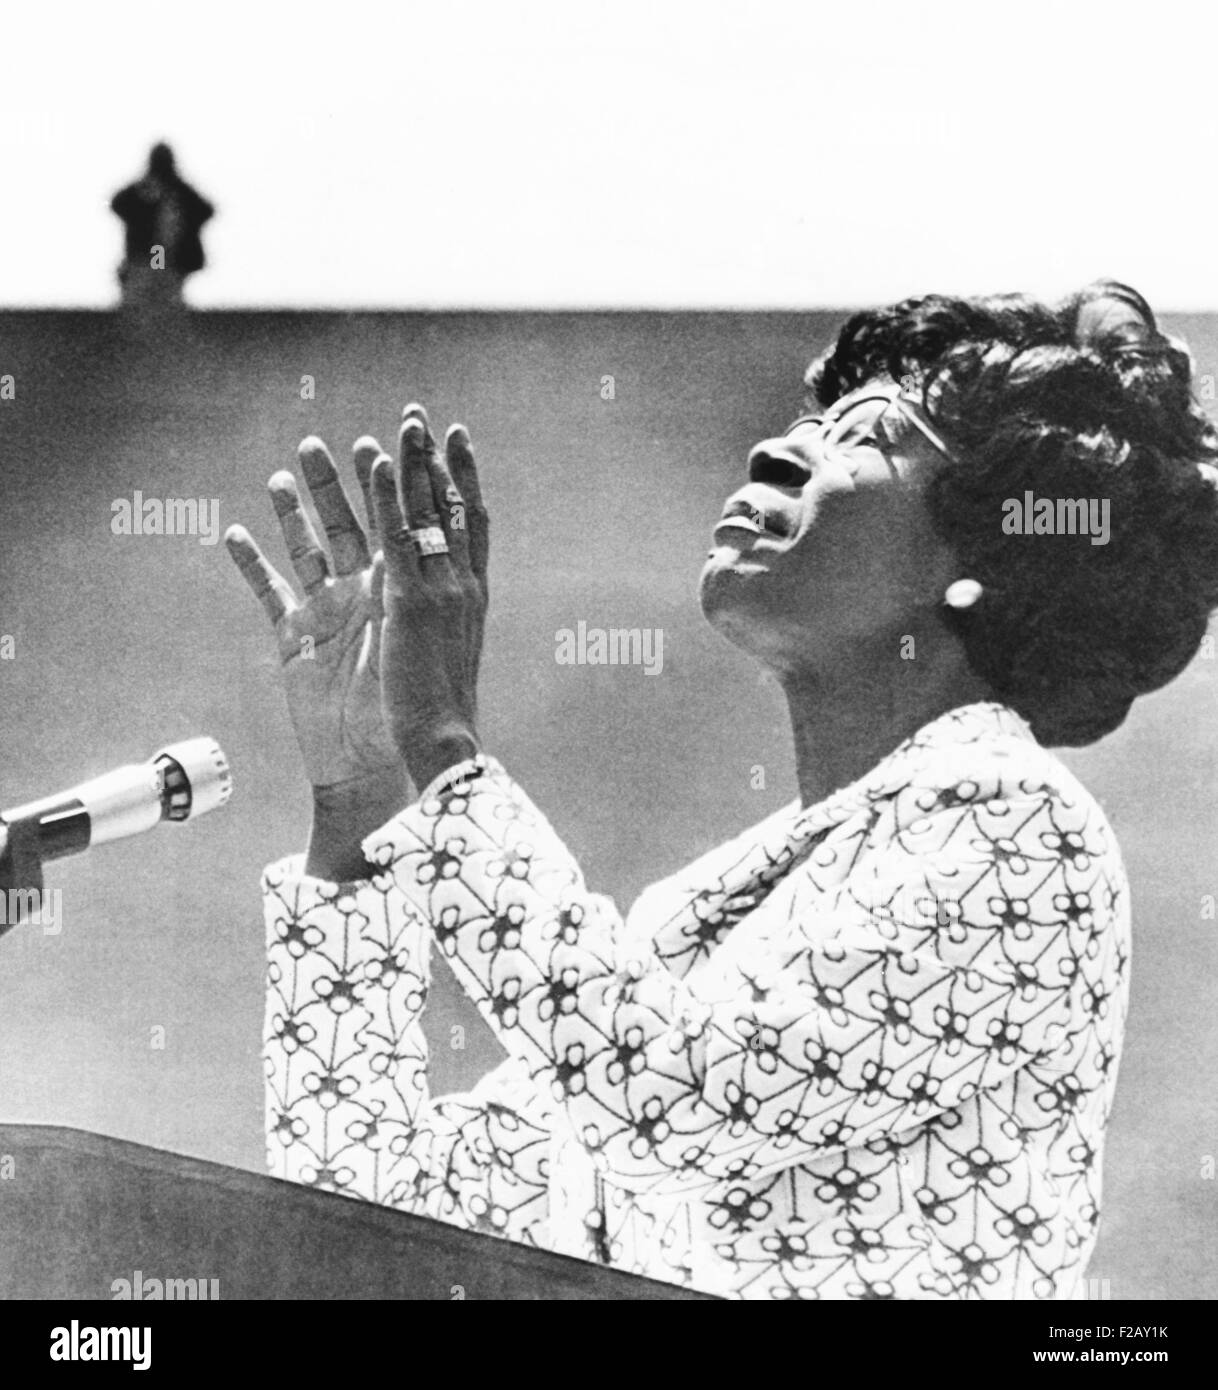 Democratic presidential candidate Shirley Chisholm addresses students at Cal State at Long Beach. June 17, 1972. - Stock Image